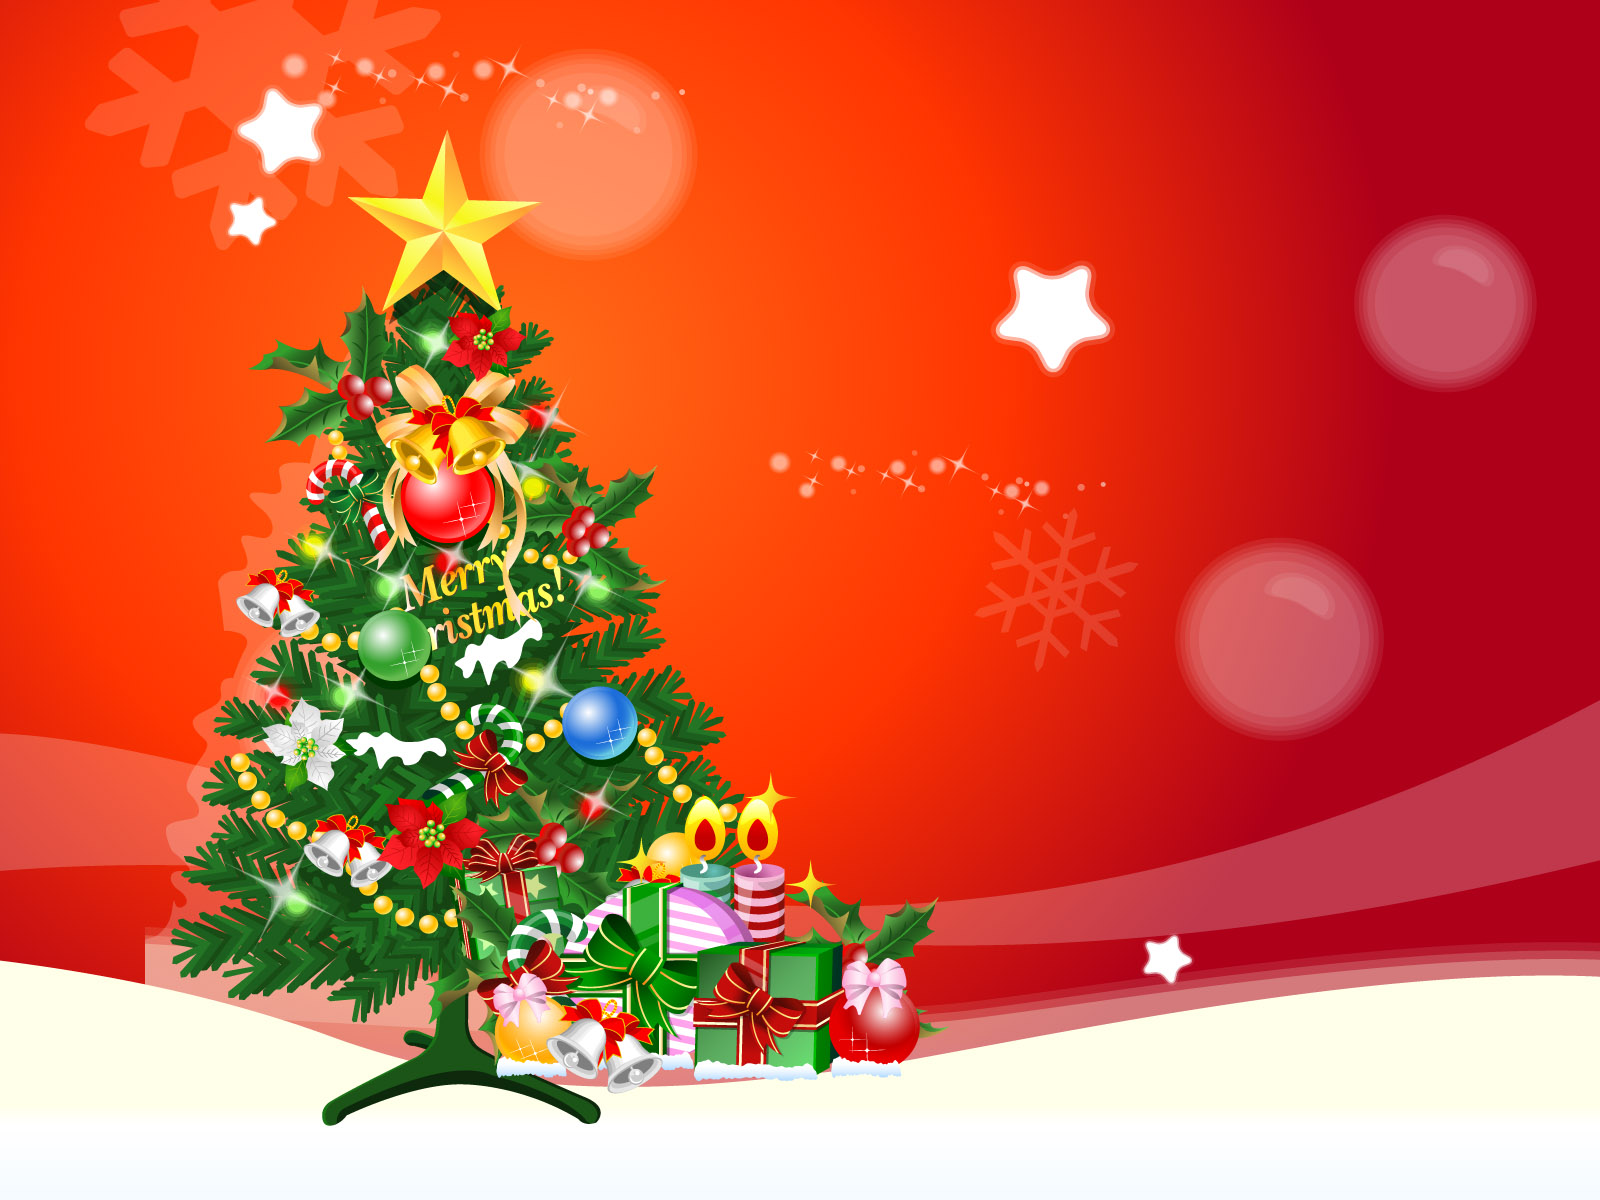 High Definition Photo And Wallpapers: Hd Red Merry